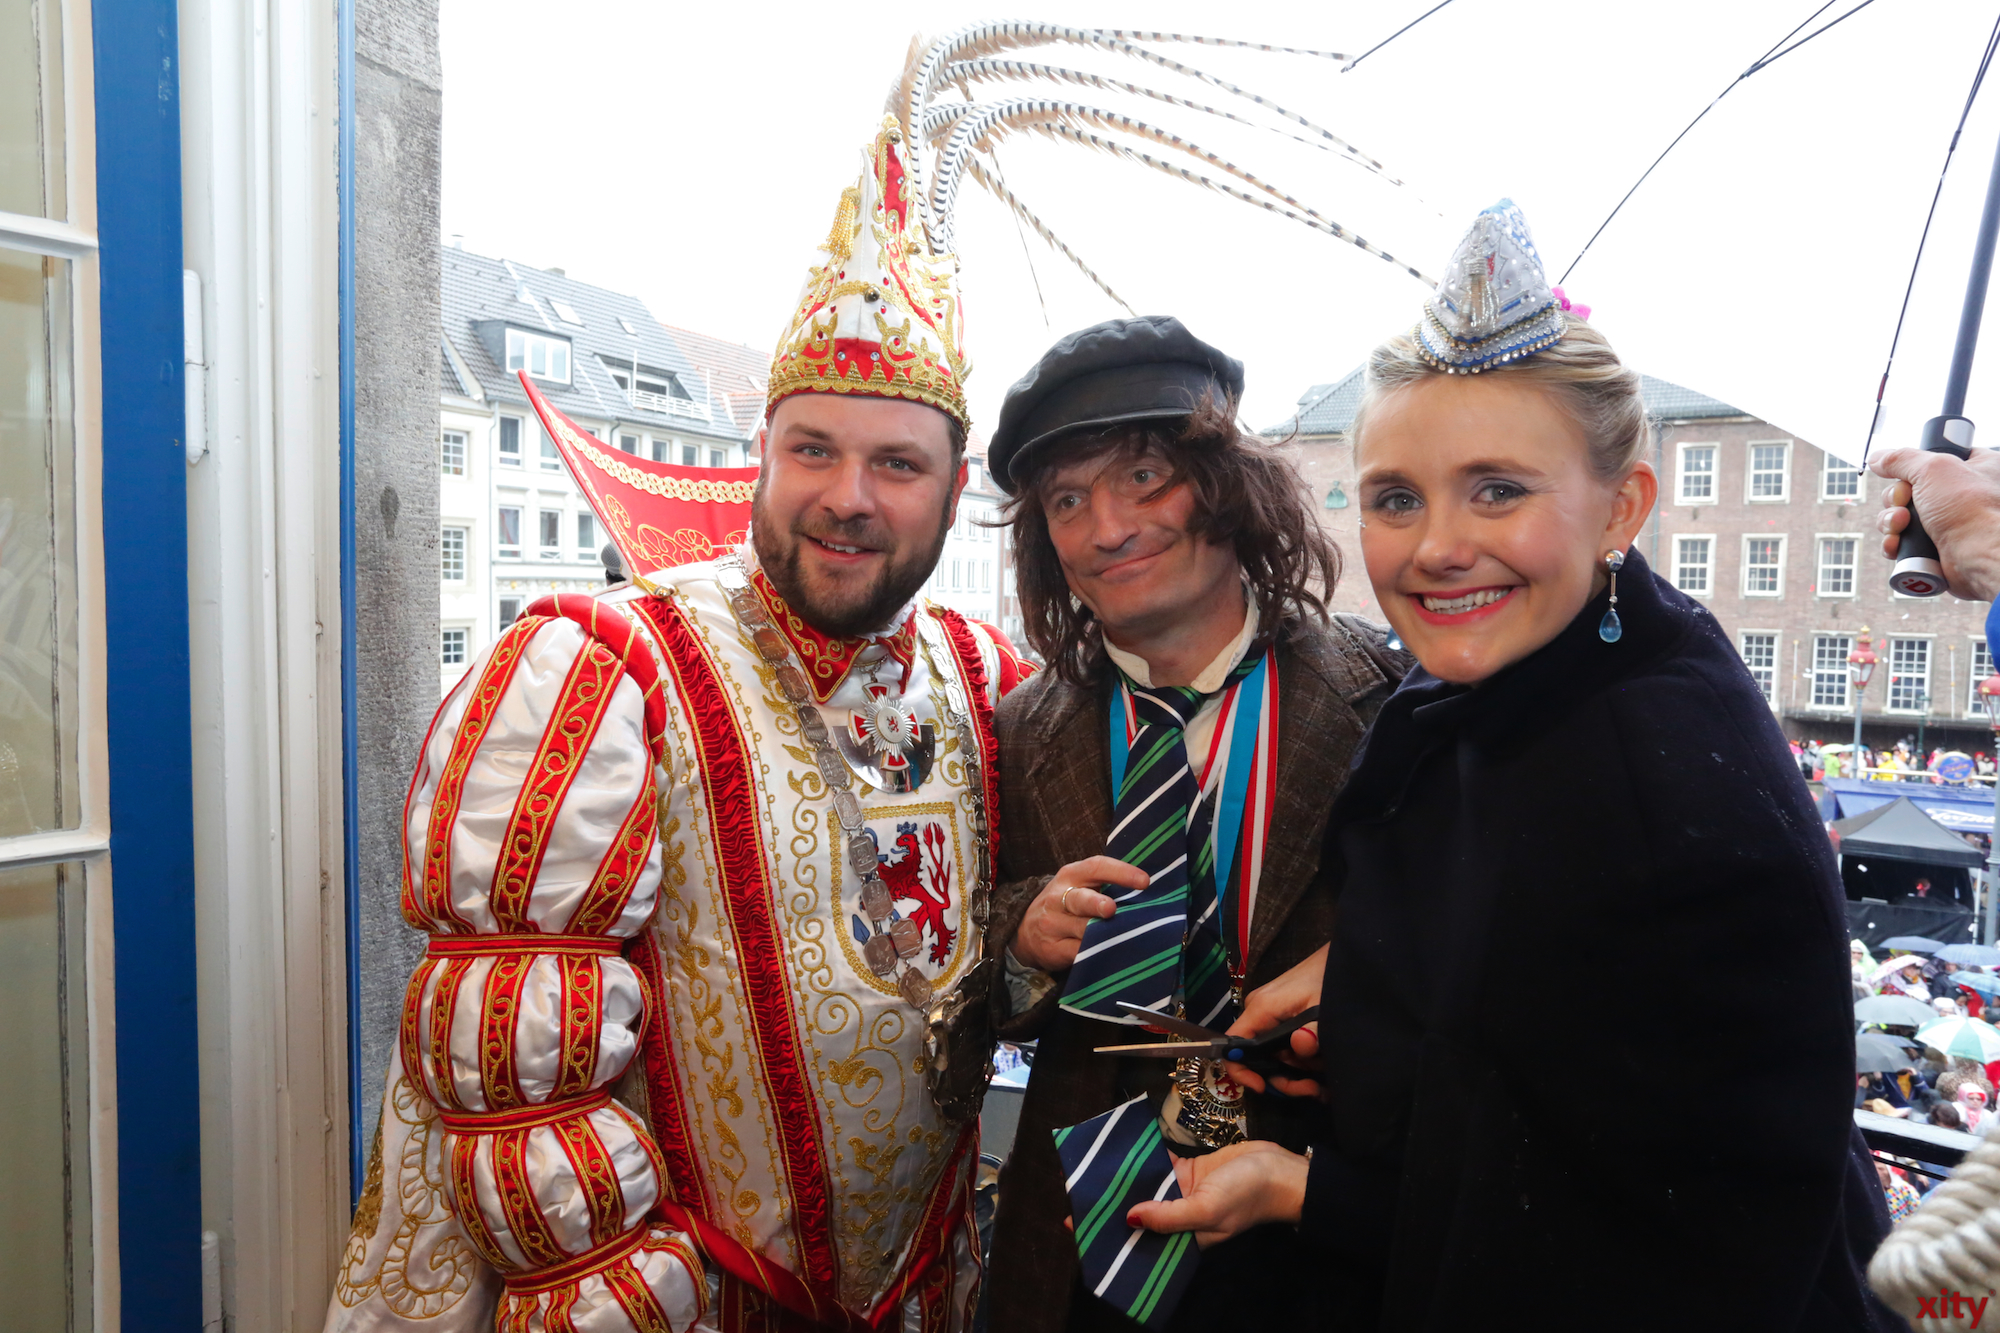 Prince Hanno the first, Lord Mayor Thomas Geisel and Venetia Sara. (left to right) (Photo: xity)